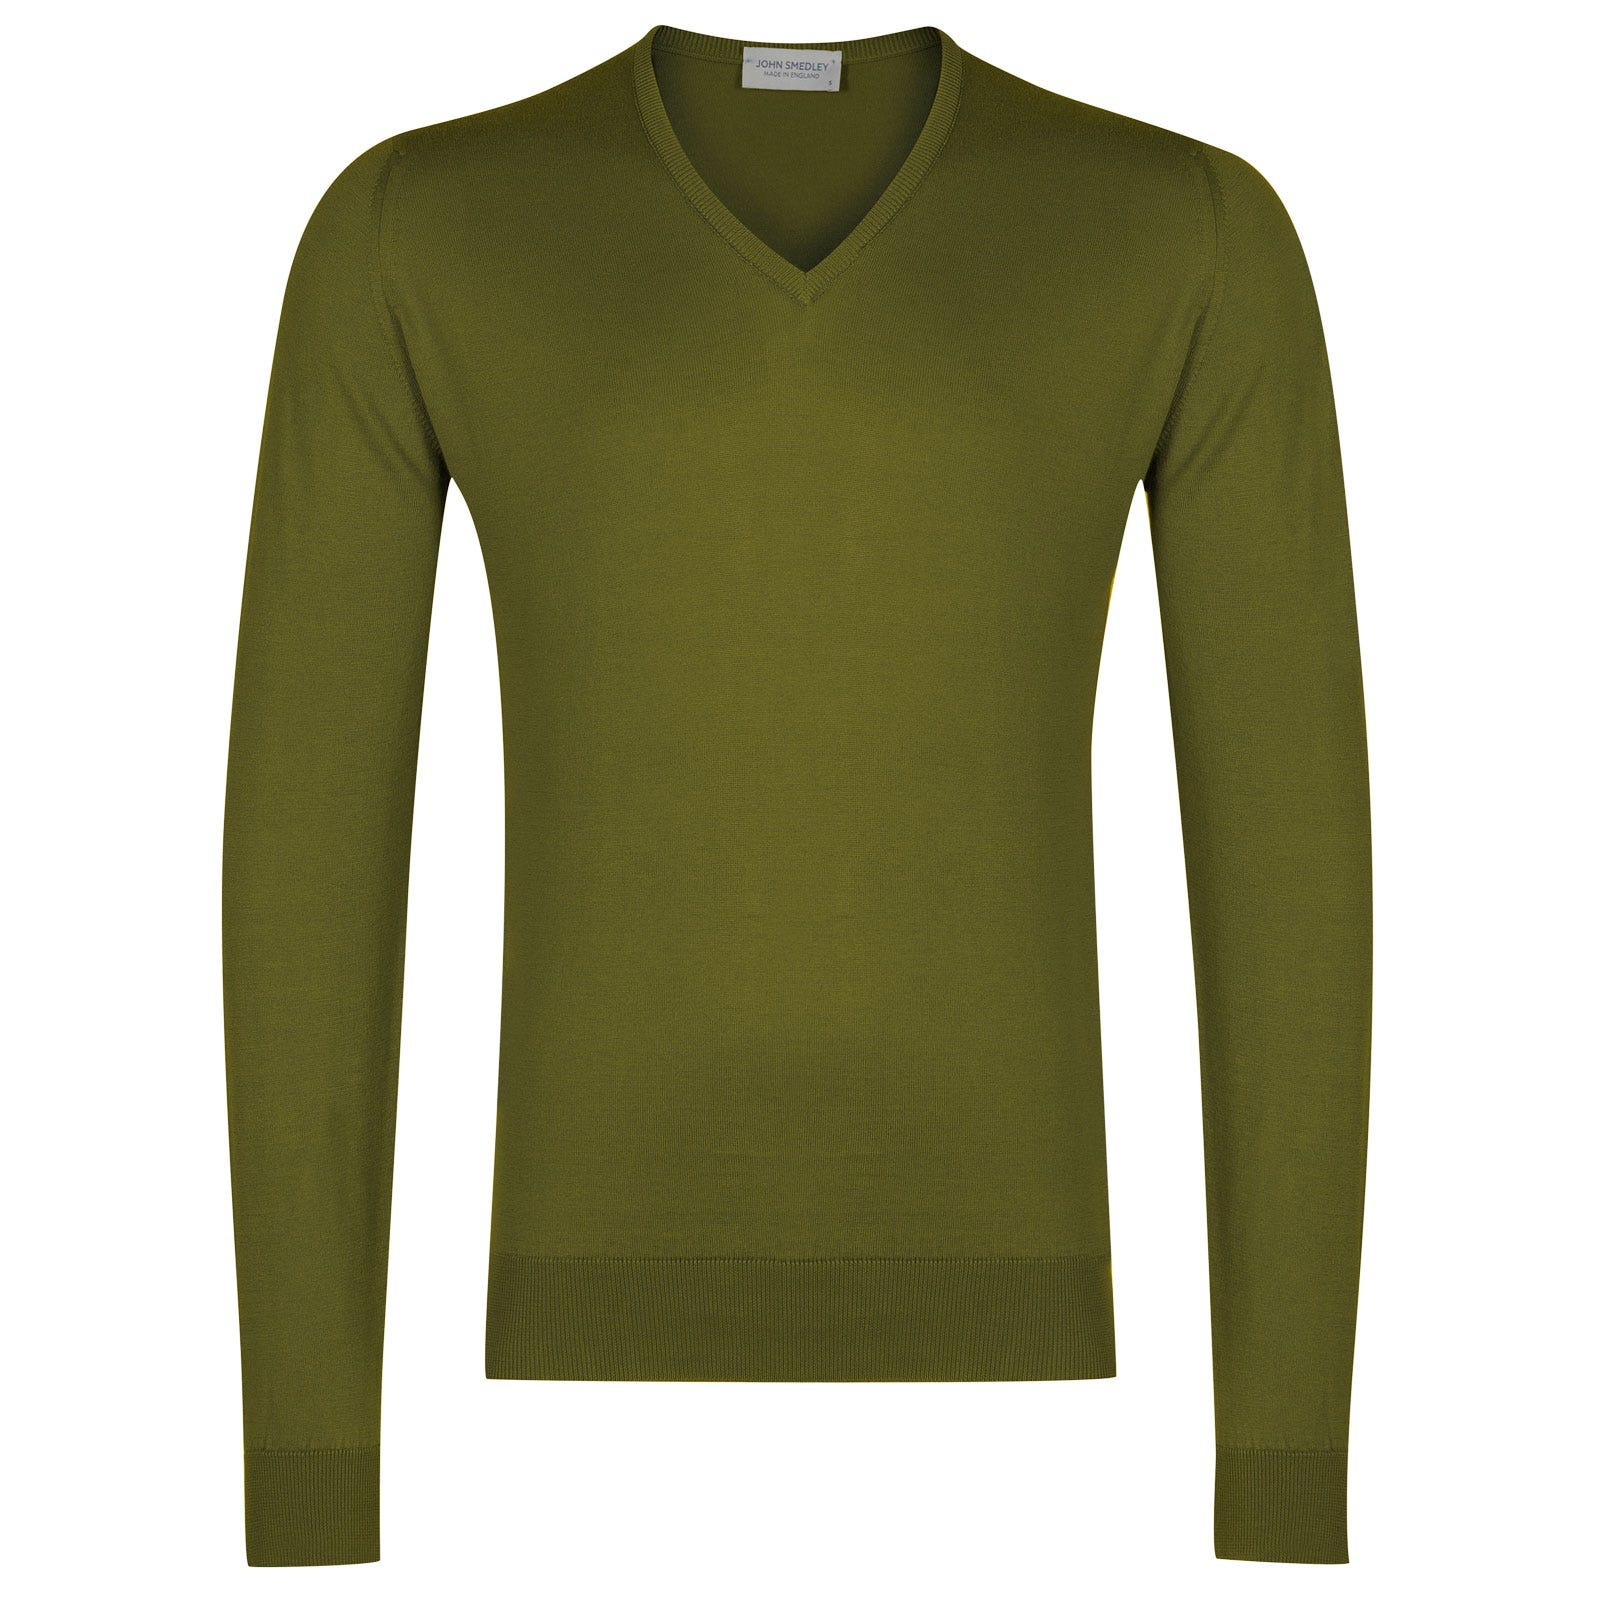 John Smedley Woburn Sea Island Cotton Pullover in Lumsdale Green-S